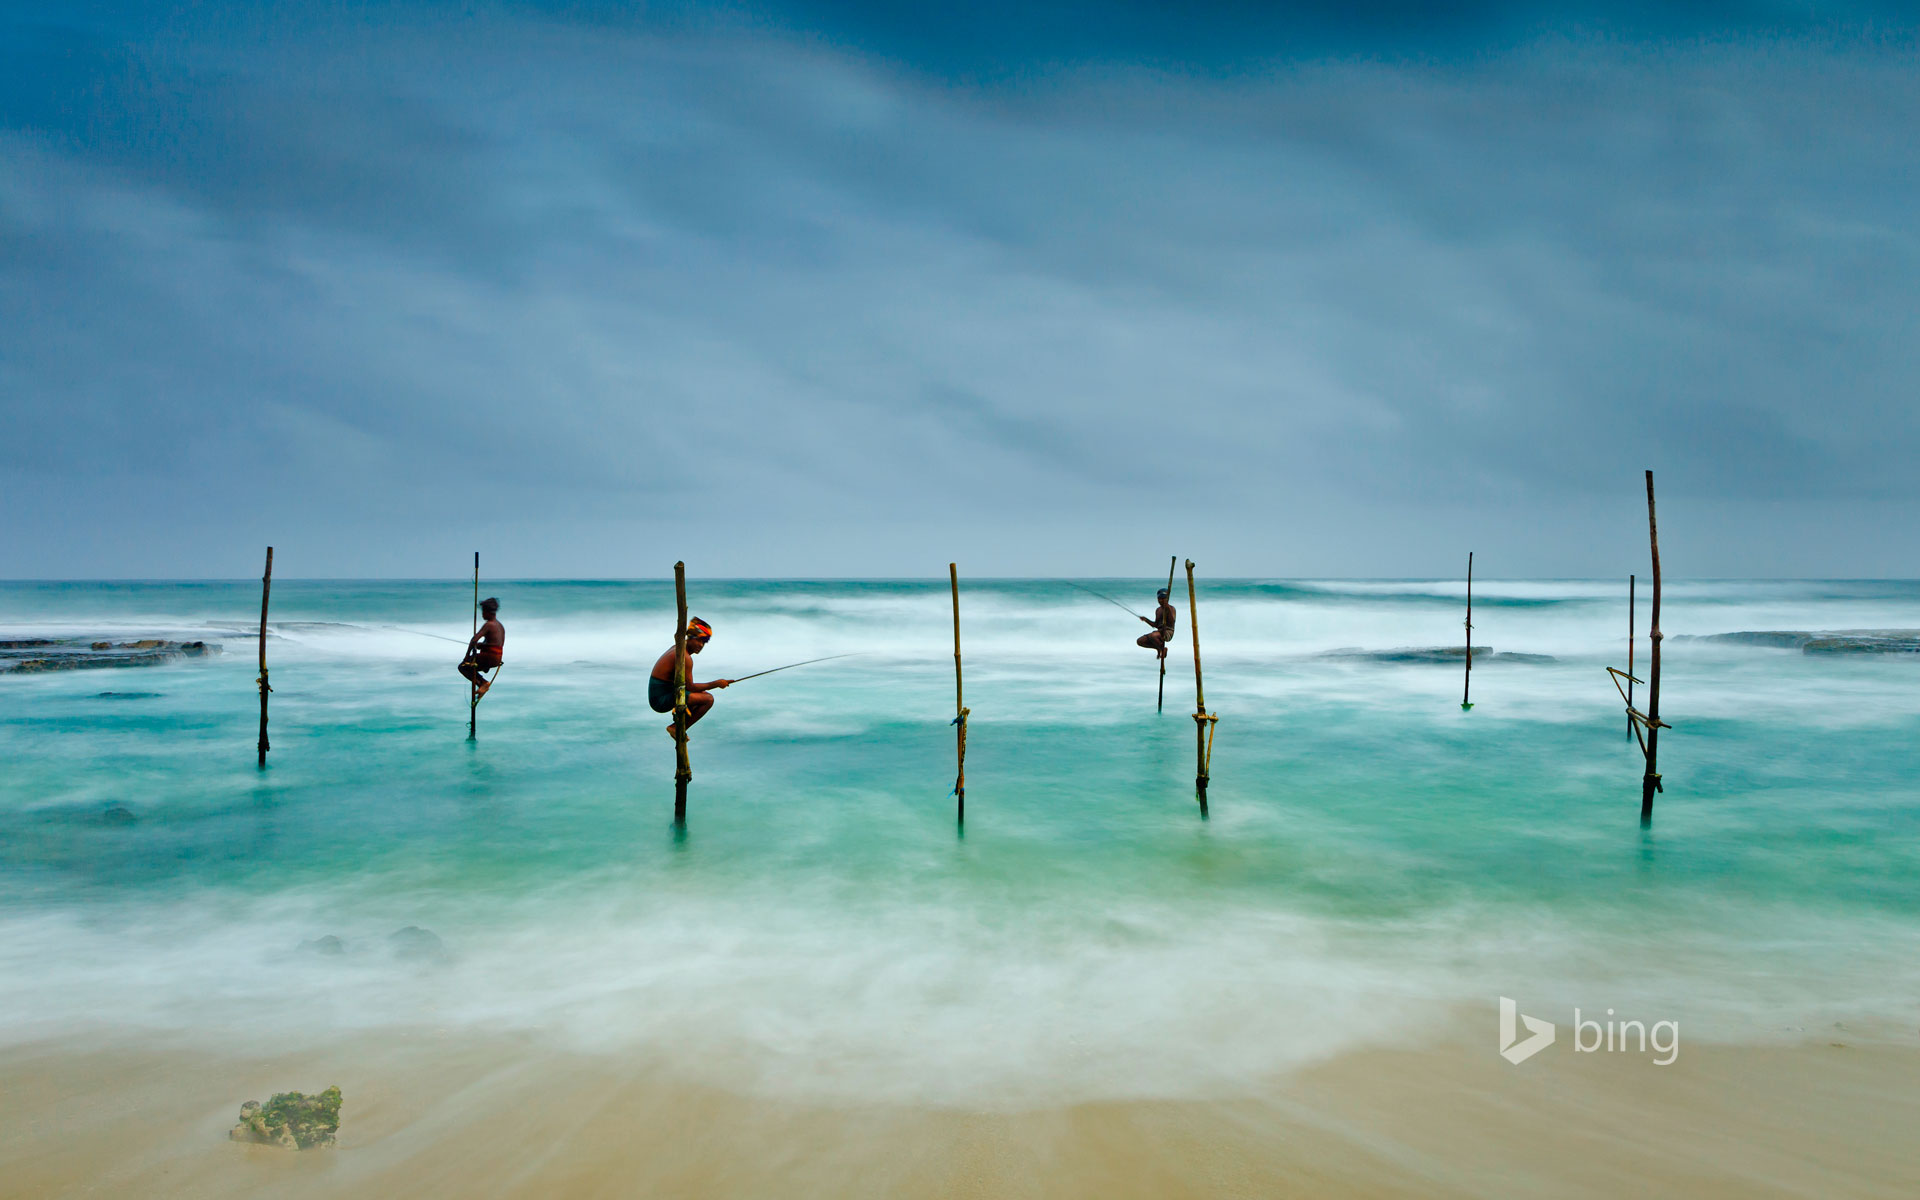 Stilt fishing in Koggala, Sri Lanka